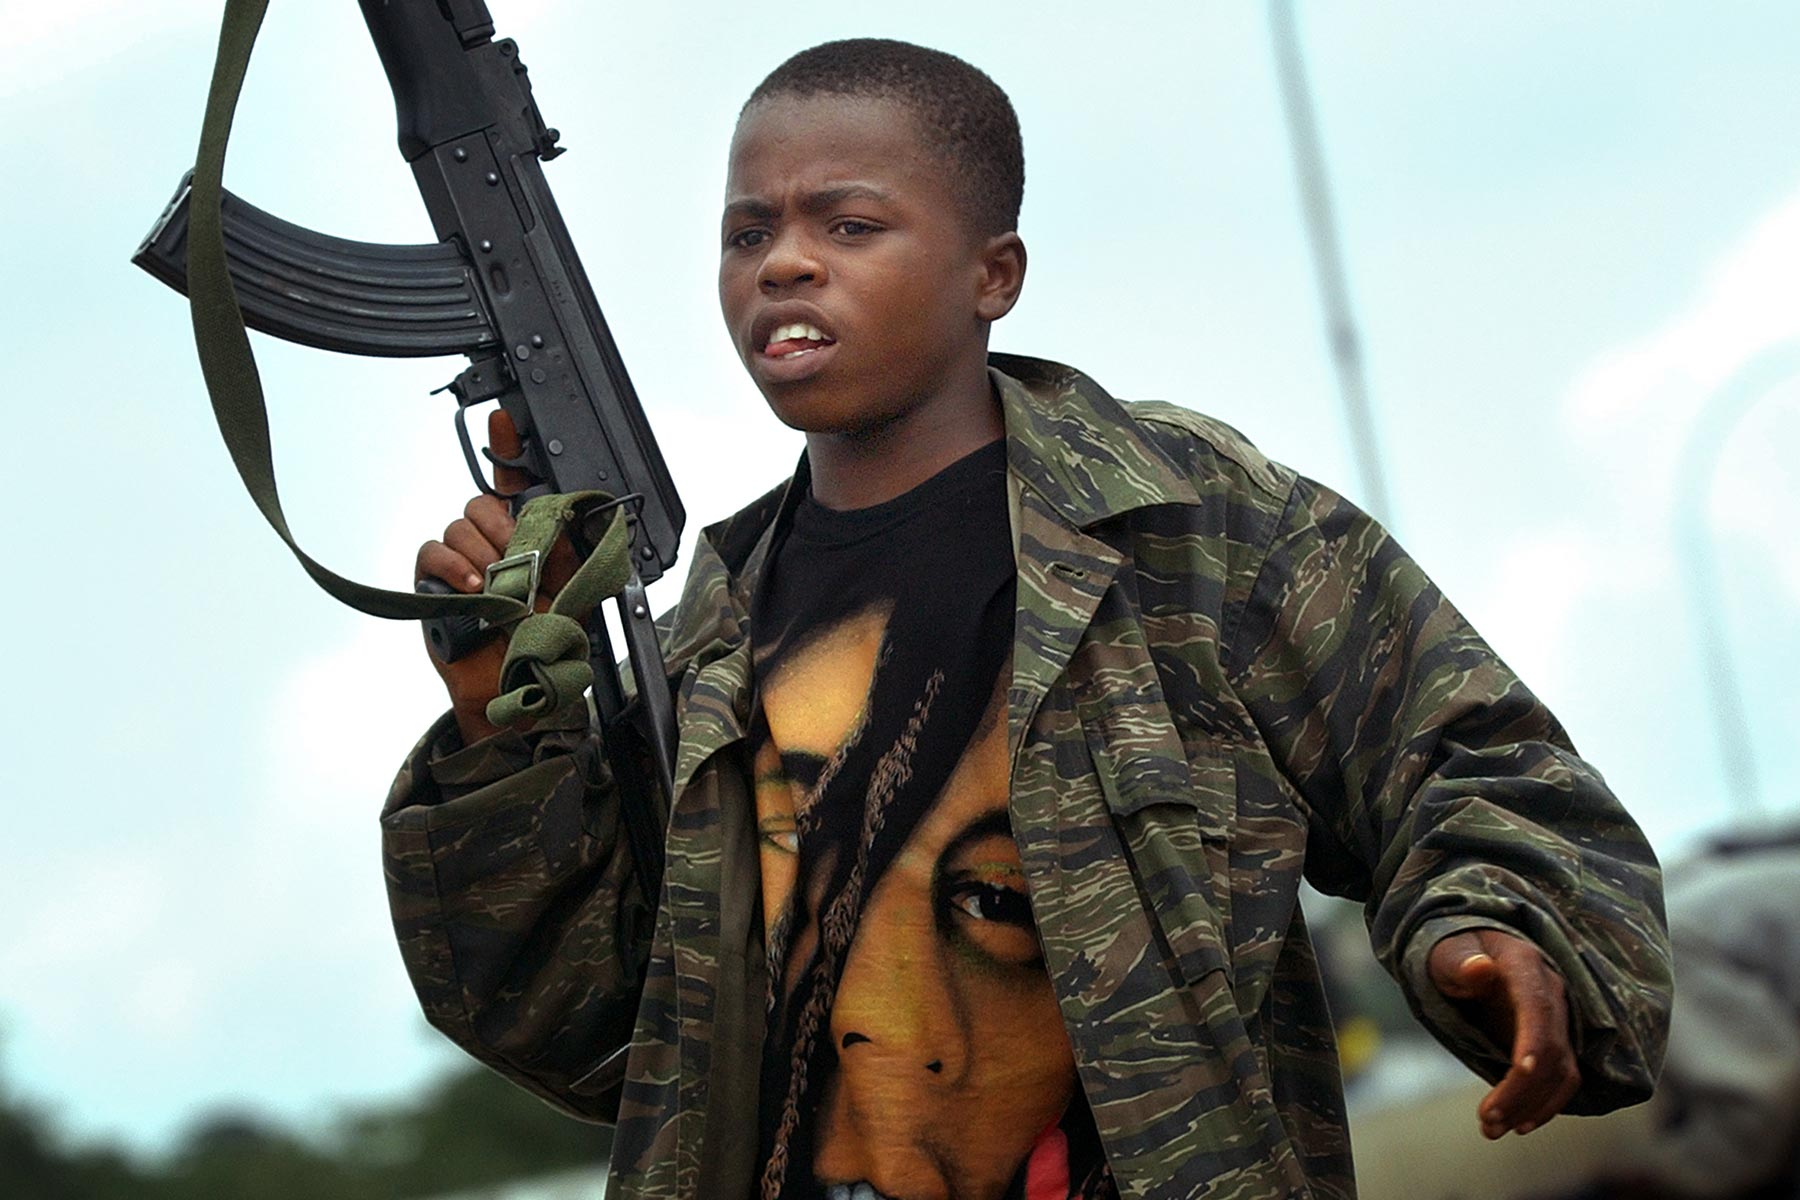 JULY 20, 2003 MONROVIA, LIBERIA Momo Dukoe,13, raises AK-47 rifles at the frontline in Monrovia, Liberia on July 20, 2003 as fighting between President Charles Taylor's troops and the rebel intensifies. Momo, who was forcefully recruited to the government militia, has been fighting since he was 11 years old. Photo by Kuni Takahashi